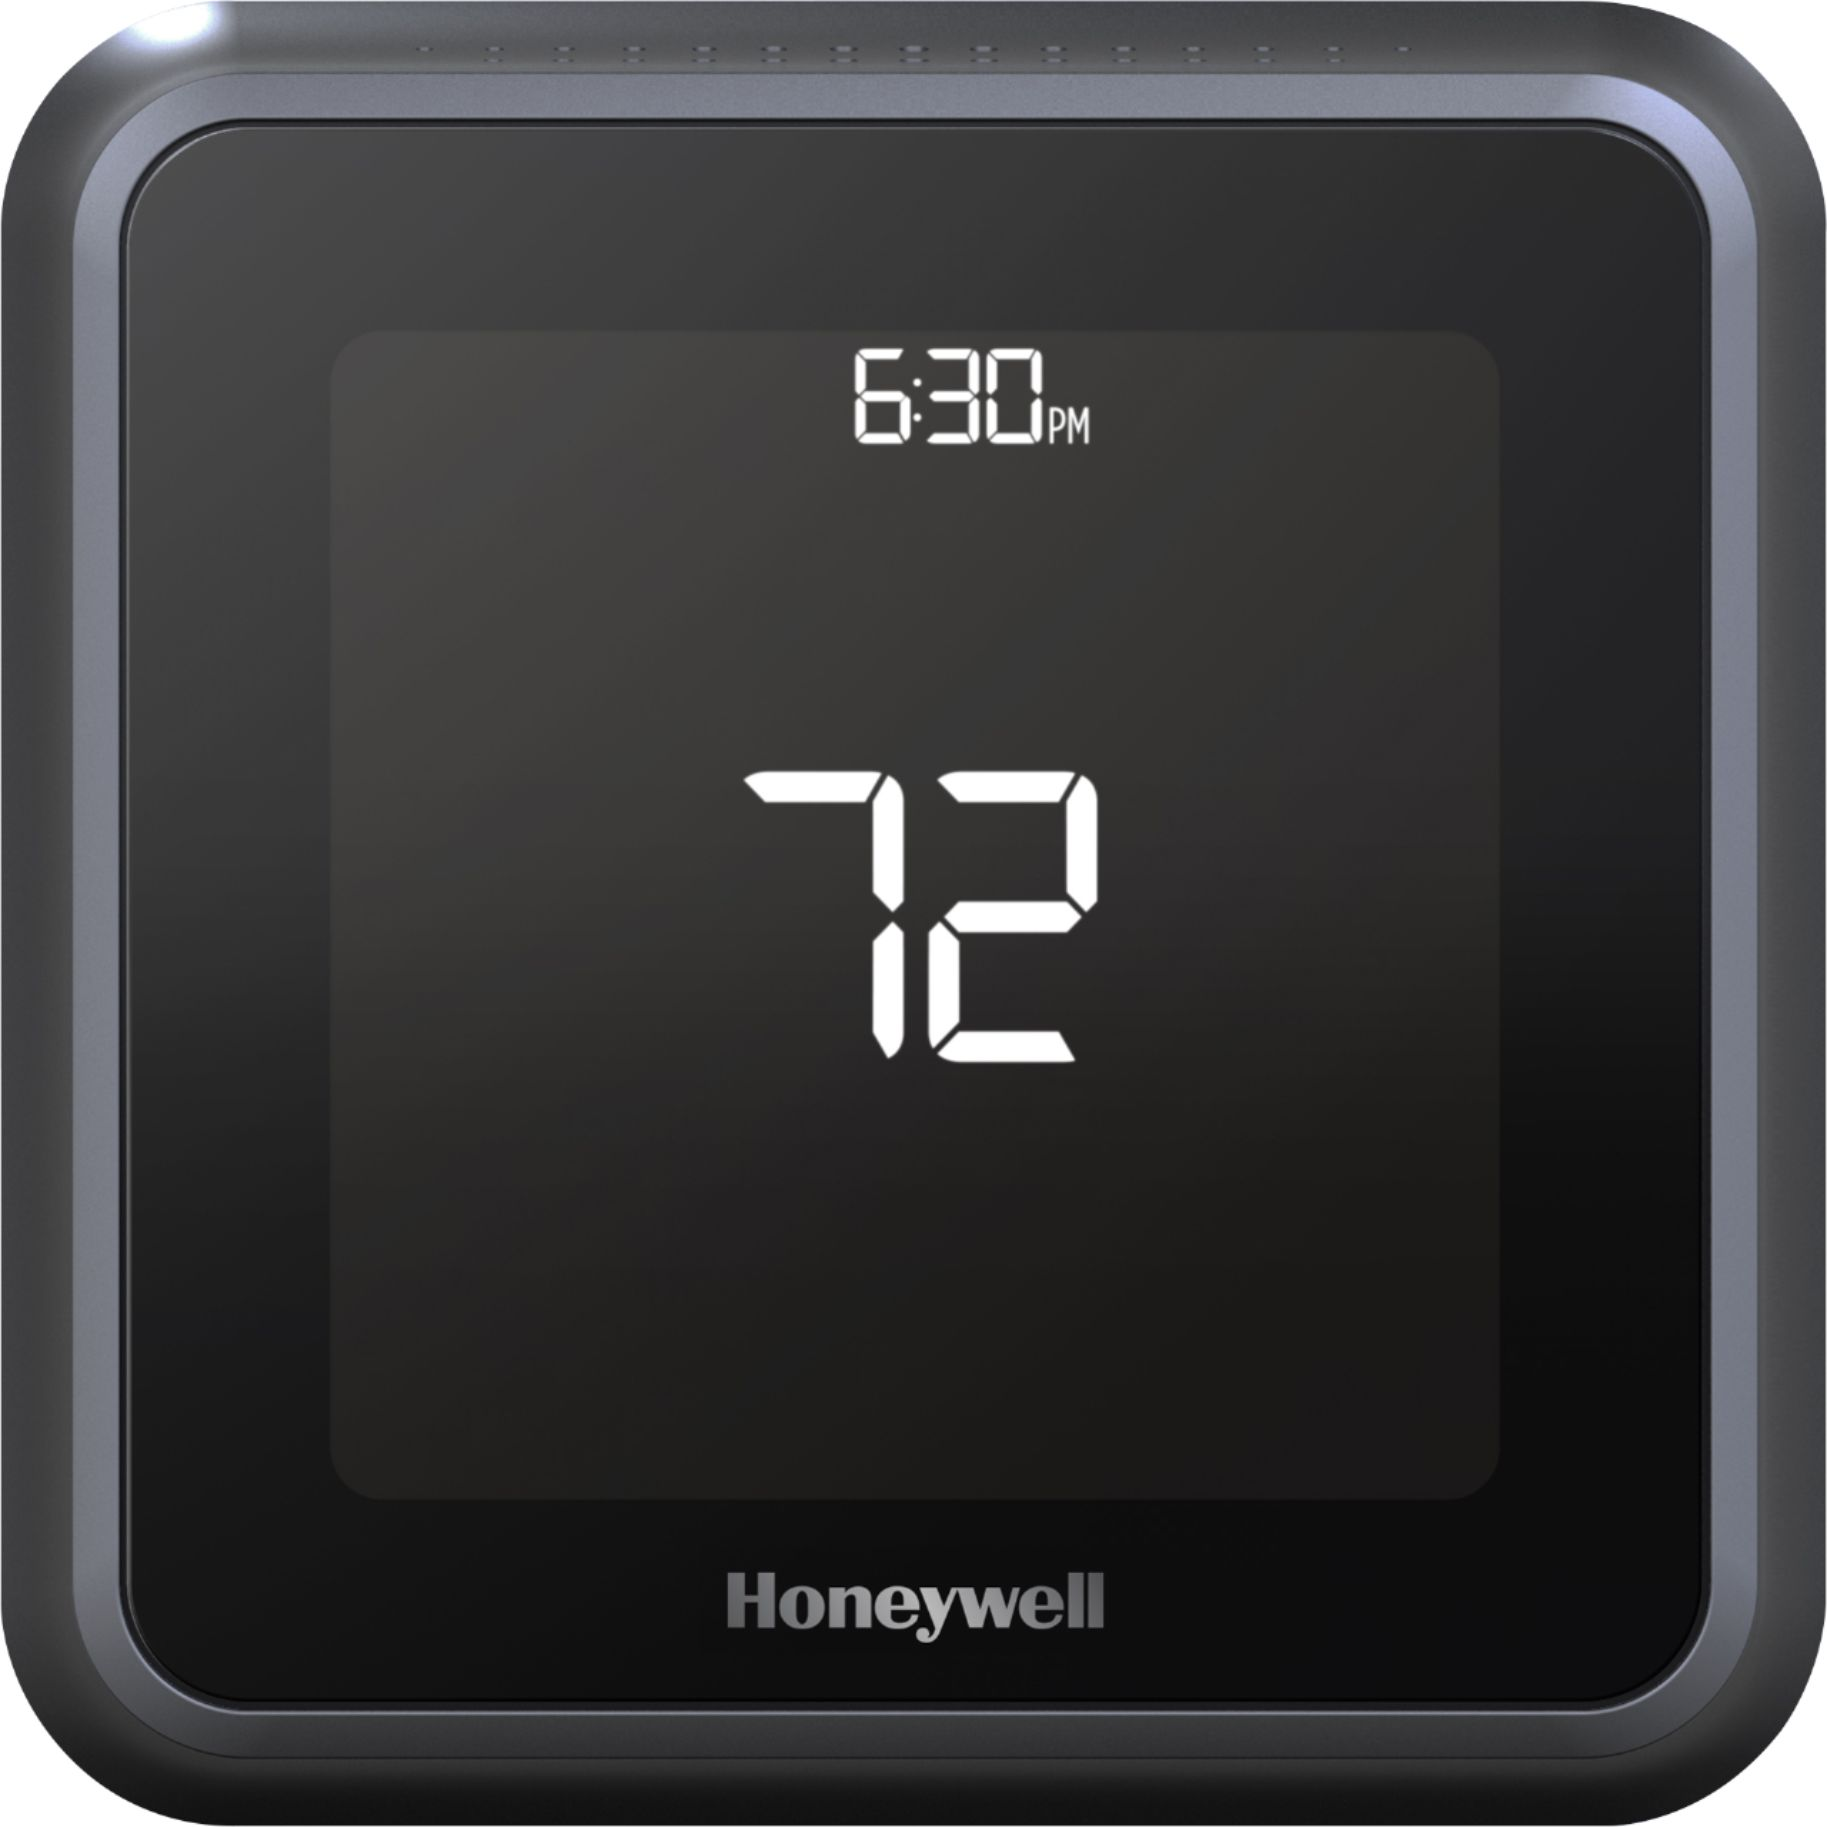 honeywell wifi thermostat kit home network wiring diagram t5 smart programmable touch screen wi fi black gray